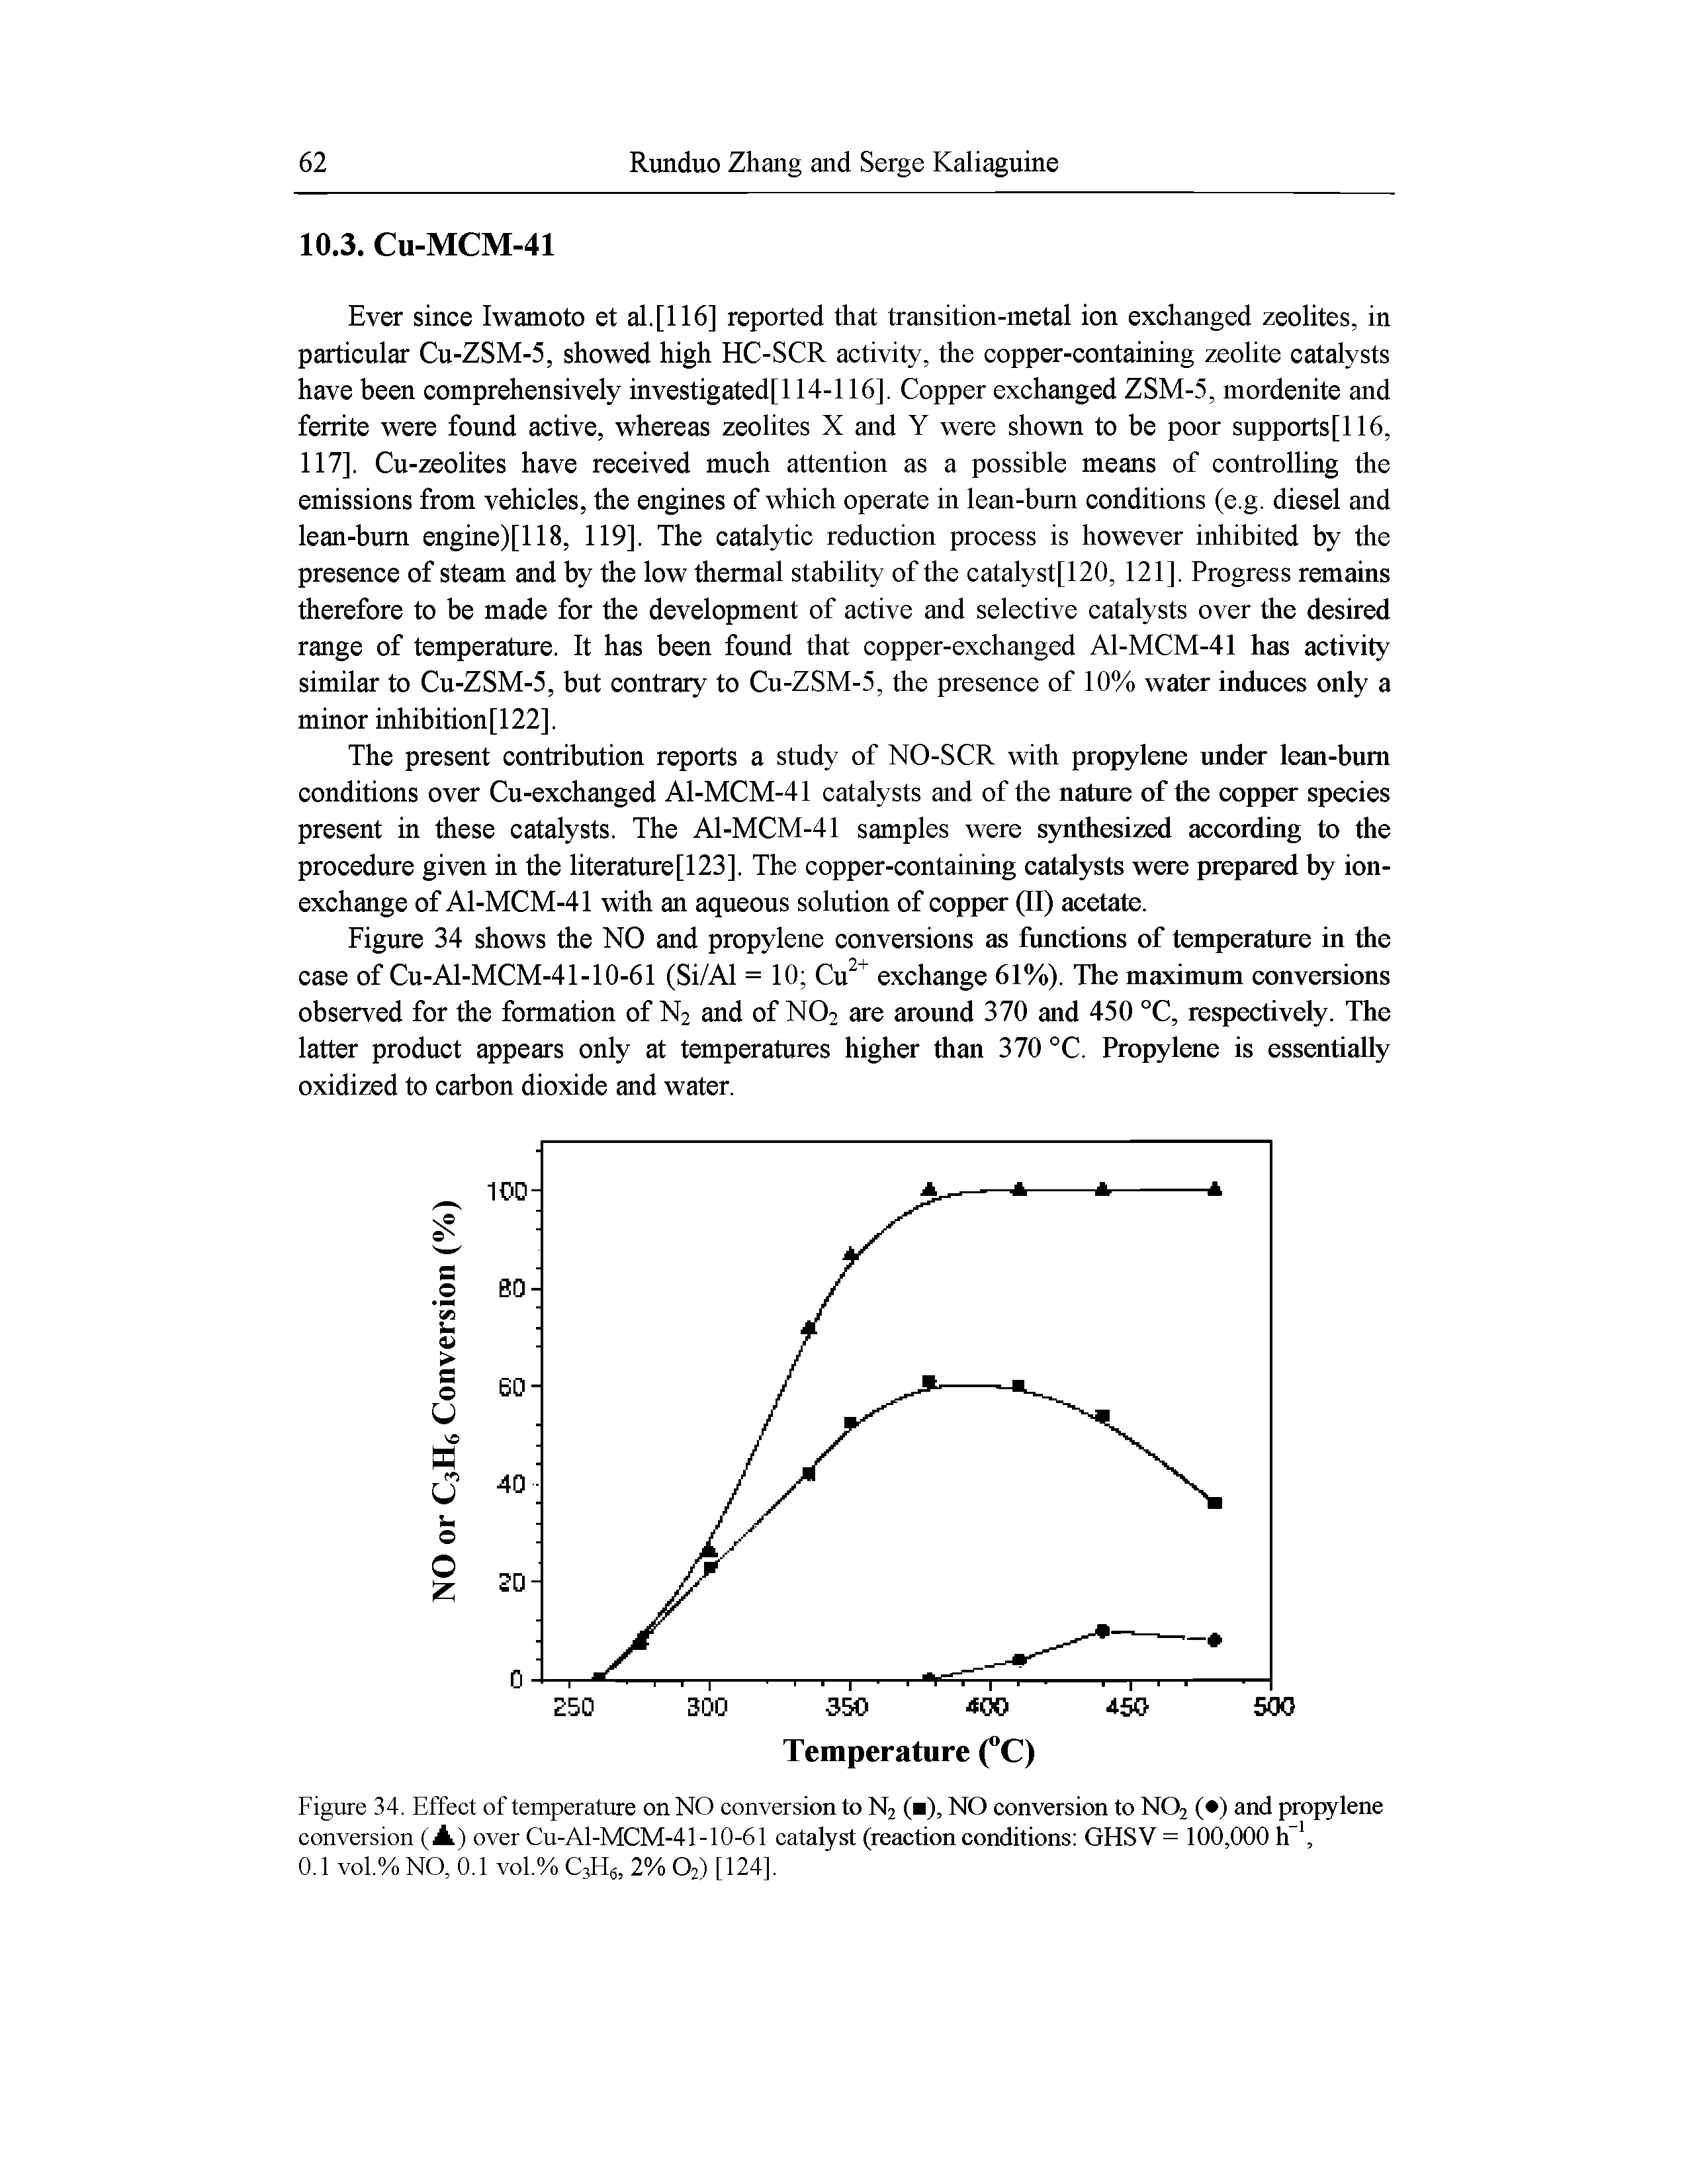 "Figure 34. Effect of temperature on NO conversion to N2 ( ), NO conversion to NO2 ( ) and propylene conversion (A) over Cu-Al-MCM-41-10-61 catalyst (<a href=""/info/reaction_condition"">reaction conditions</a> GHSV = 100,000 h,"